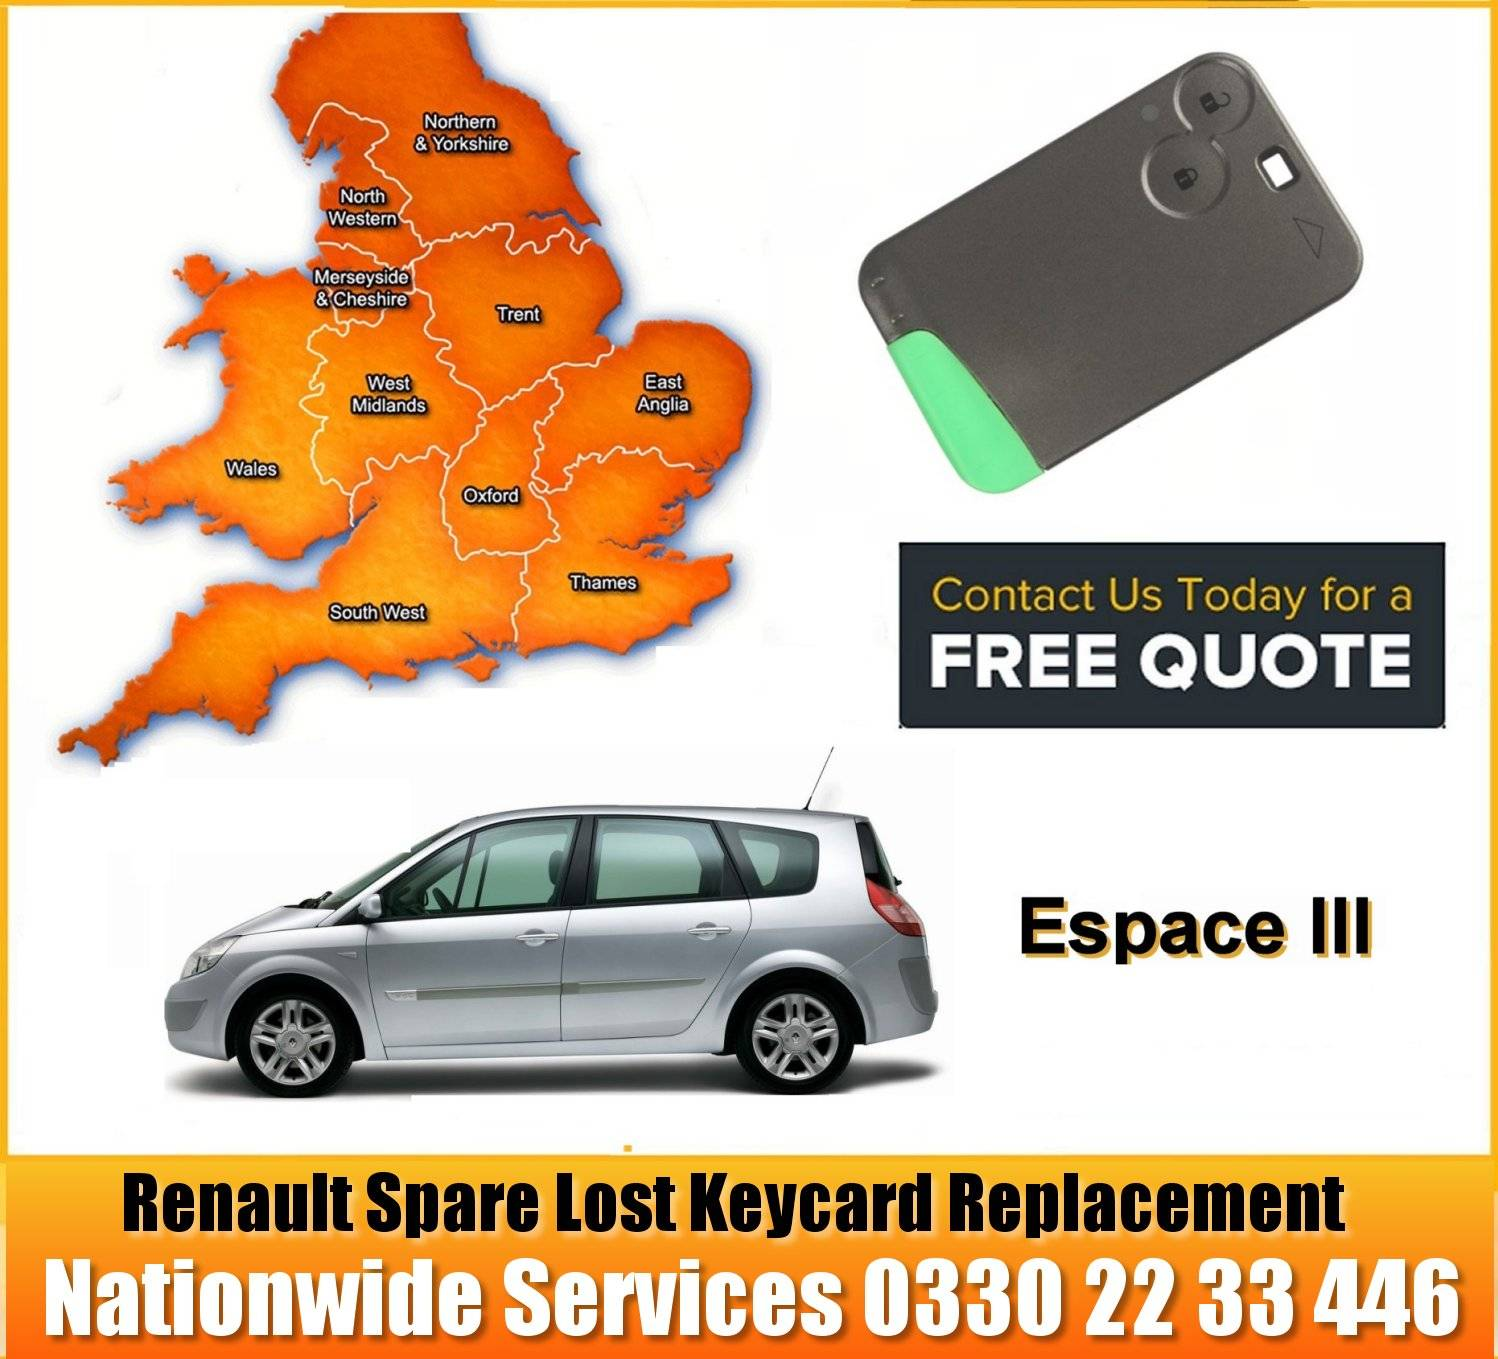 How to change the Battery in a Renault Remote Central Locking Key Card Using a Flat Head Screwdriver